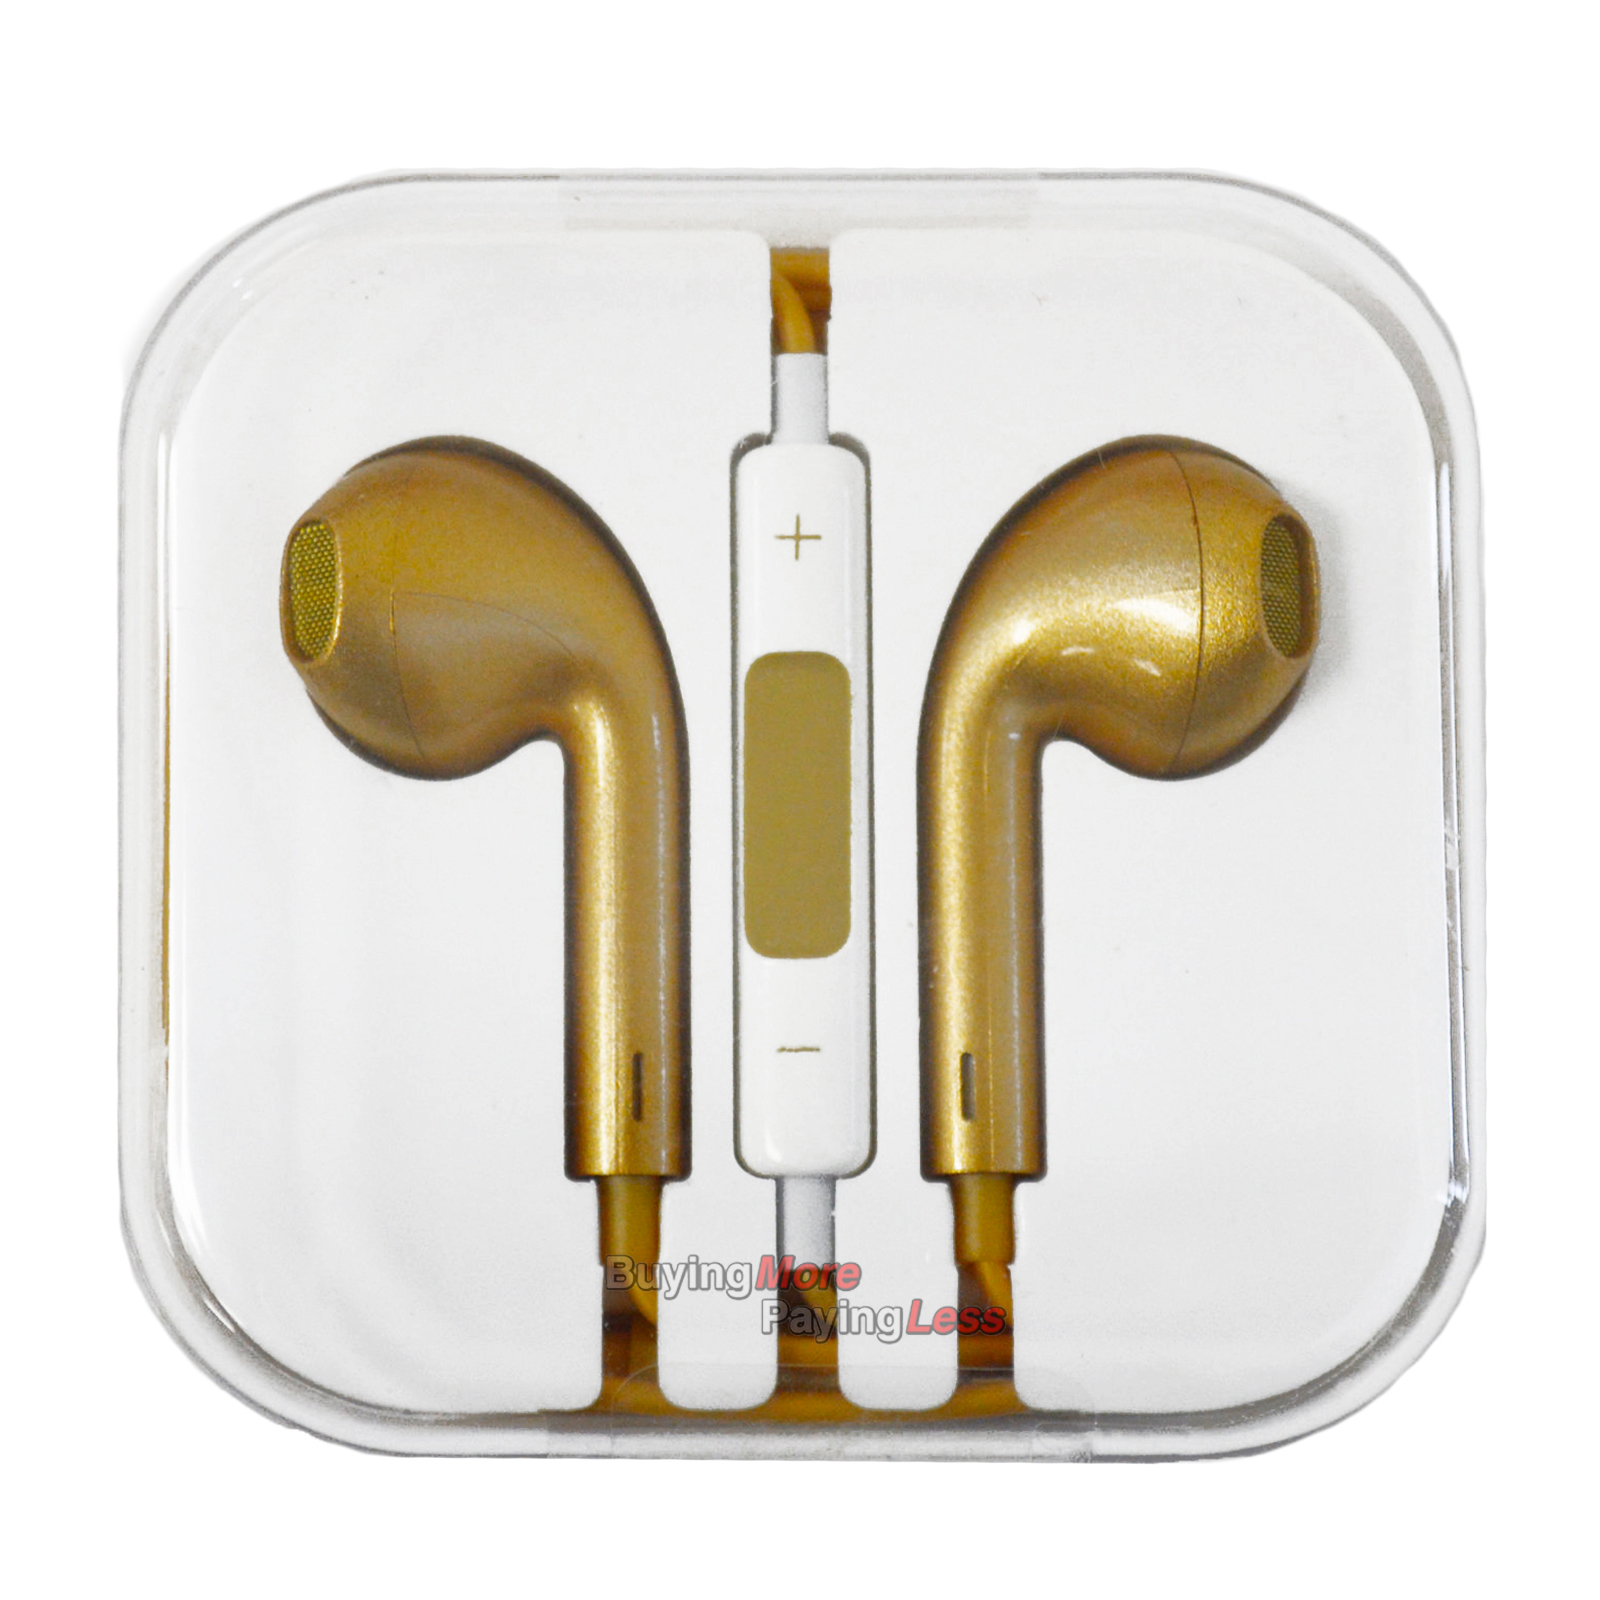 gold iphone headphones gold earphones for iphone 5 5c 4s 4 ipod nano w mic 3153